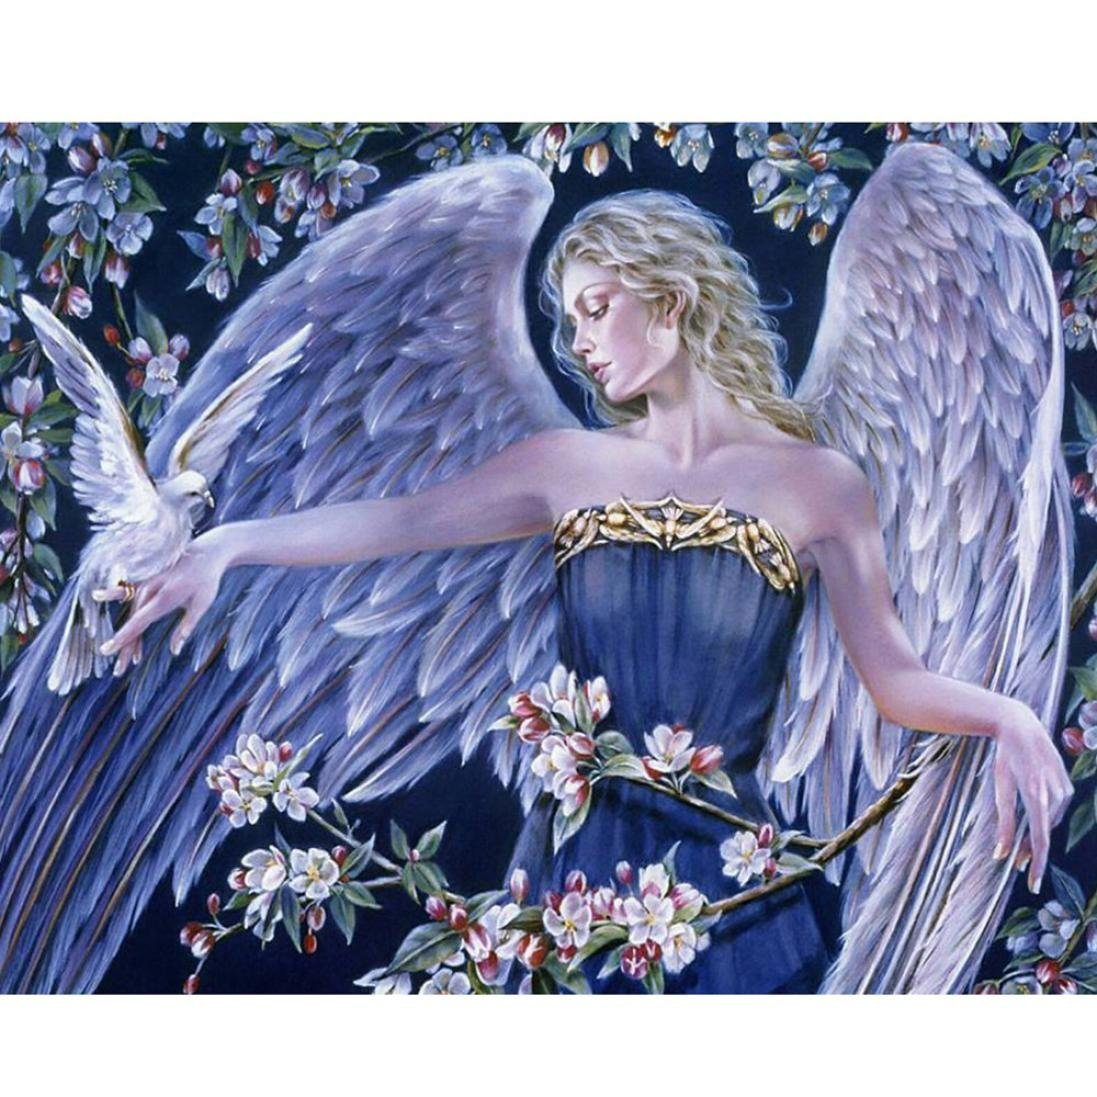 Vacally 5D DIY Diamond Painting ,Diamond Painting By Number Kits for Adults Full Square Drill Rhinestone Embroidery for Wall Decoration, Beautiful Angel